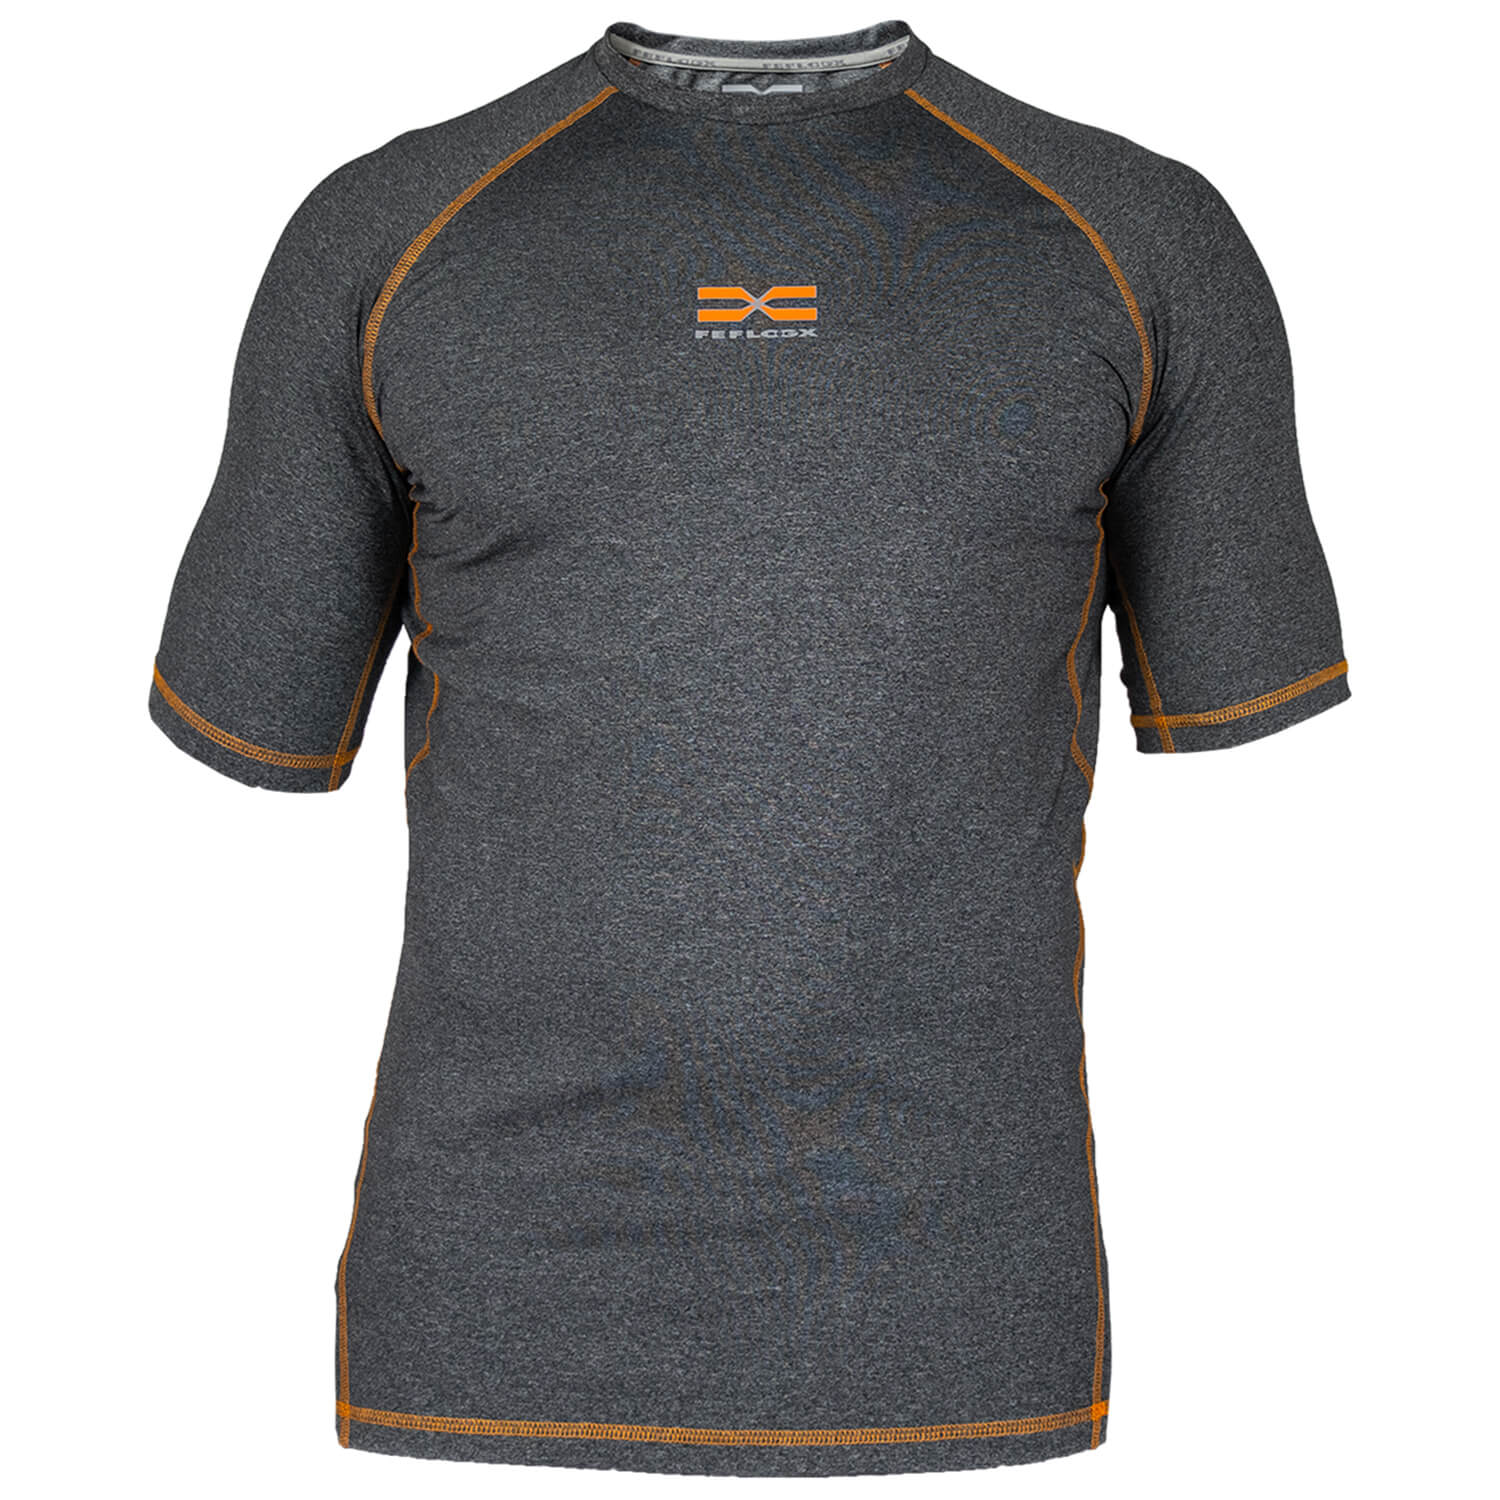 PRIME RASHGUARD COMPRESSION